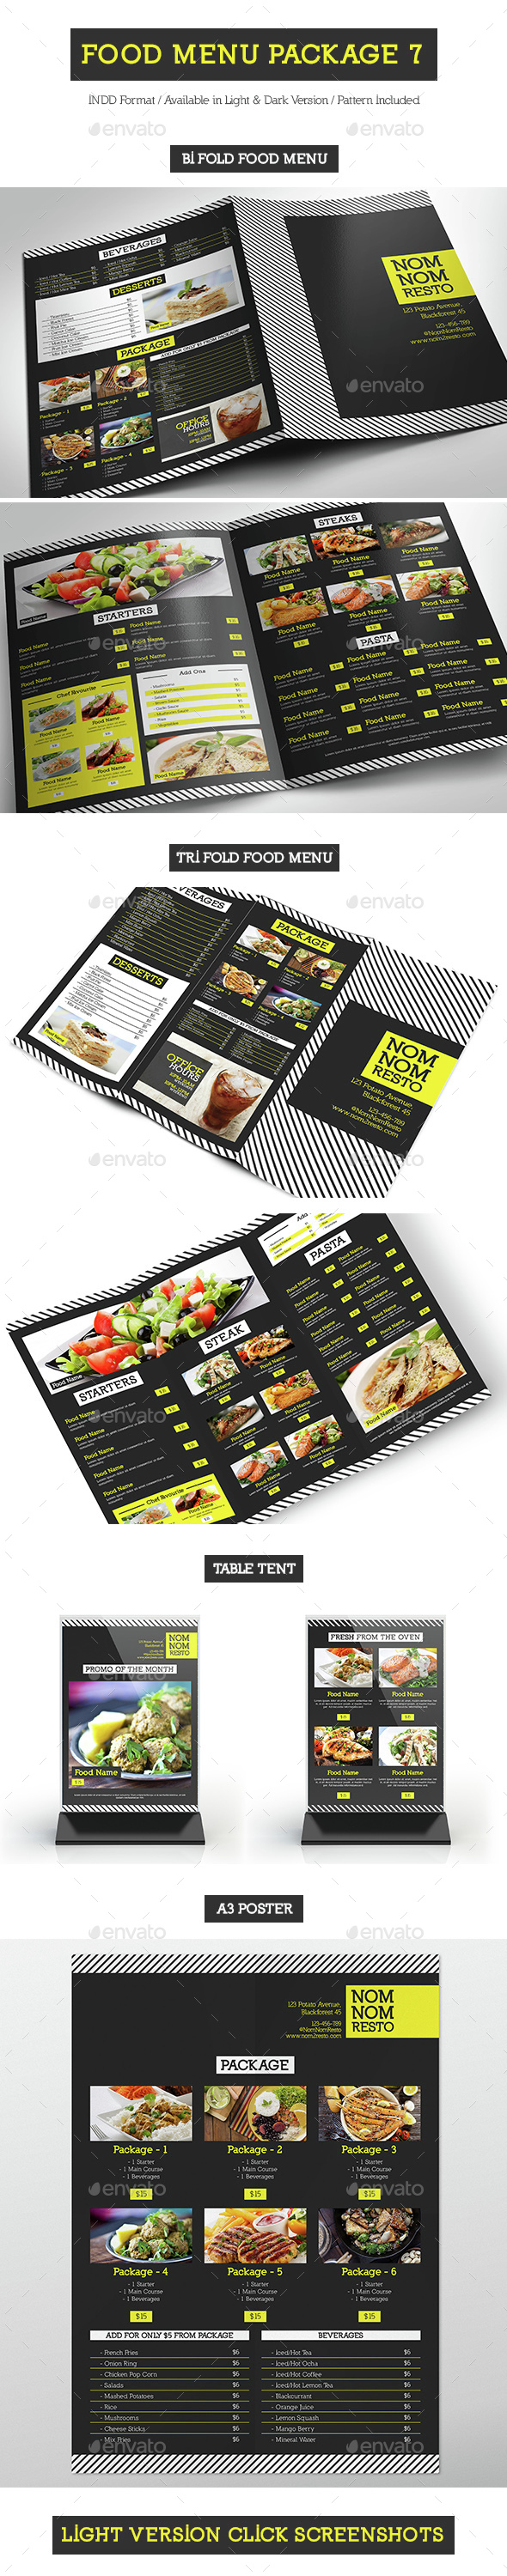 Food Menu Package 7 - Food Menus Print Templates